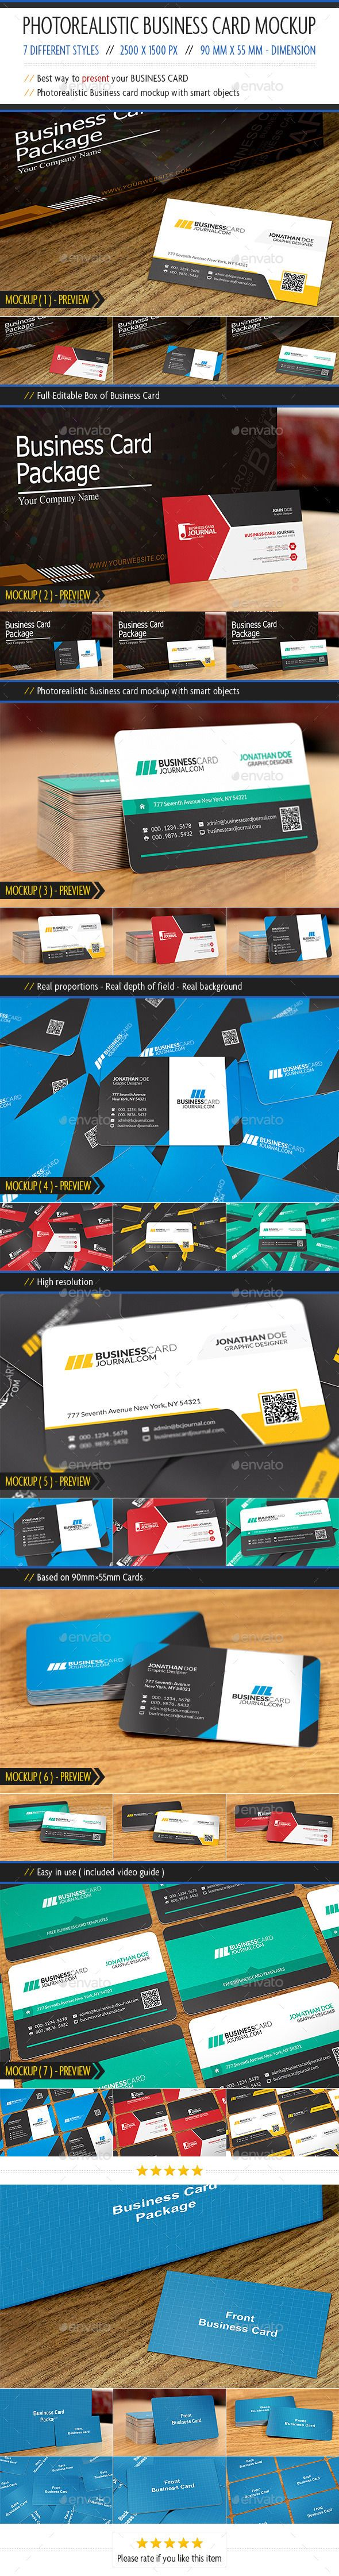 Stunning Business Card Proportions Ideas - Business Card Ideas ...